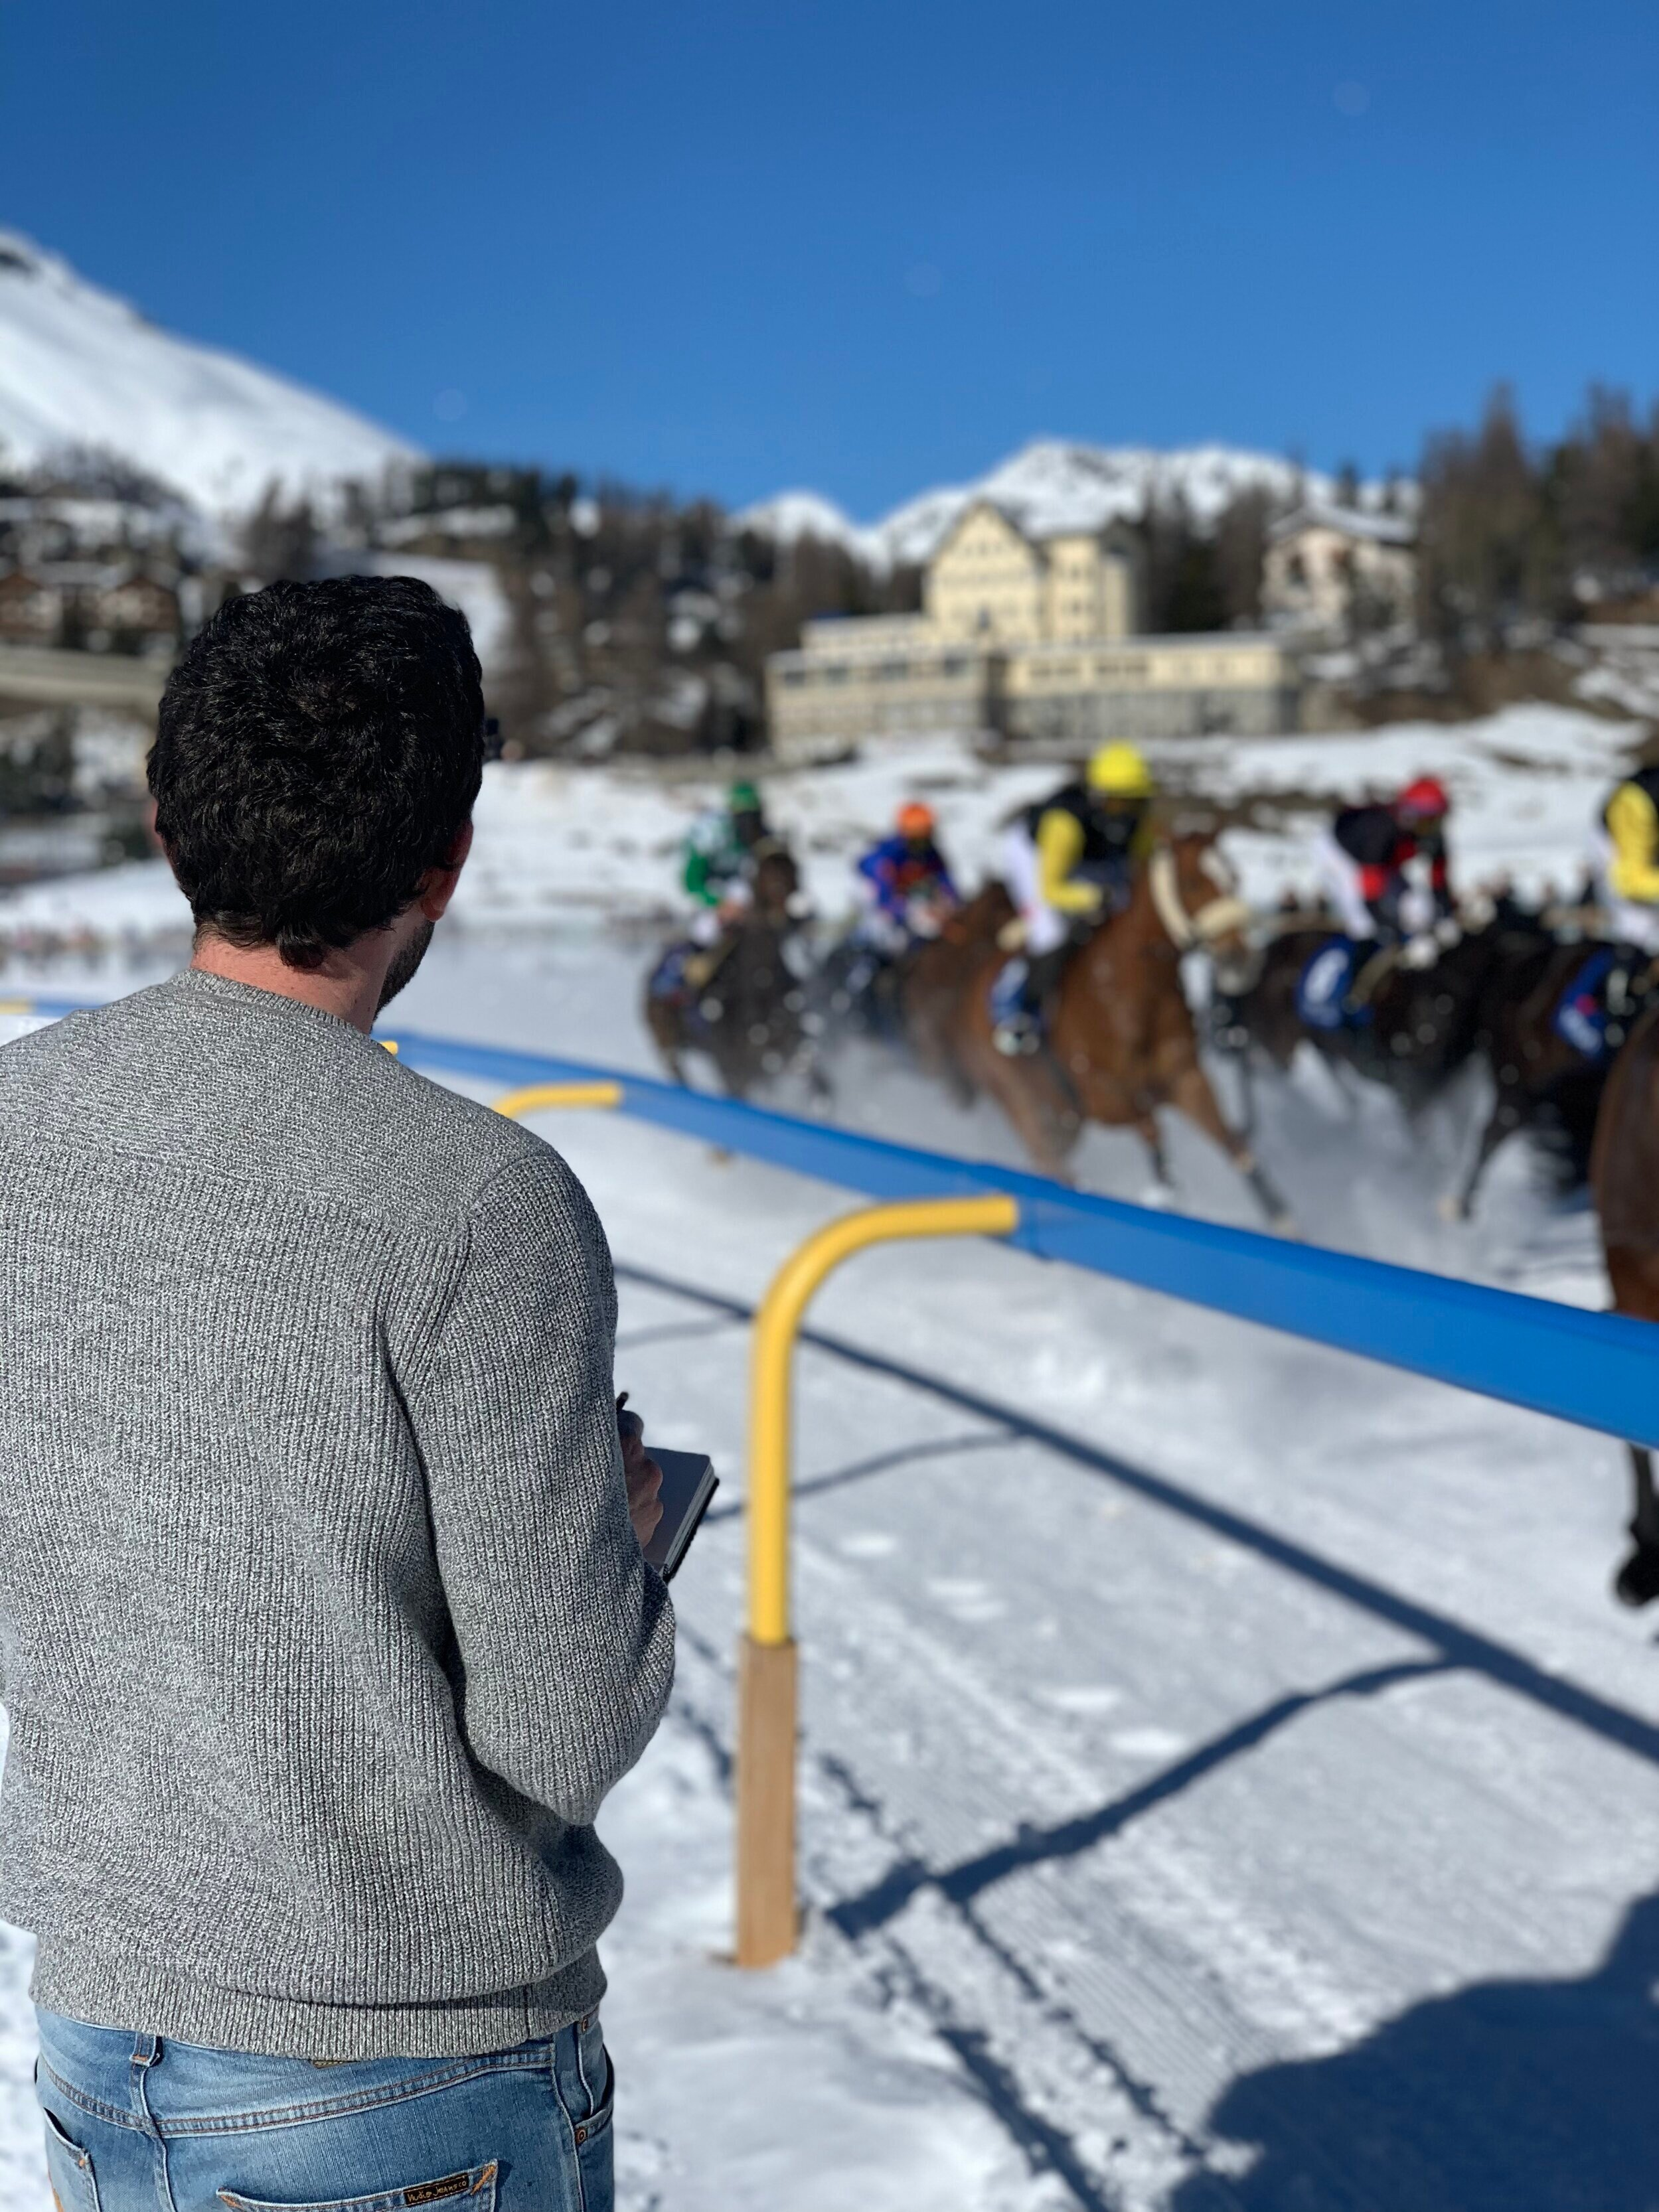 The artist track side at The White Turf, St Moritz